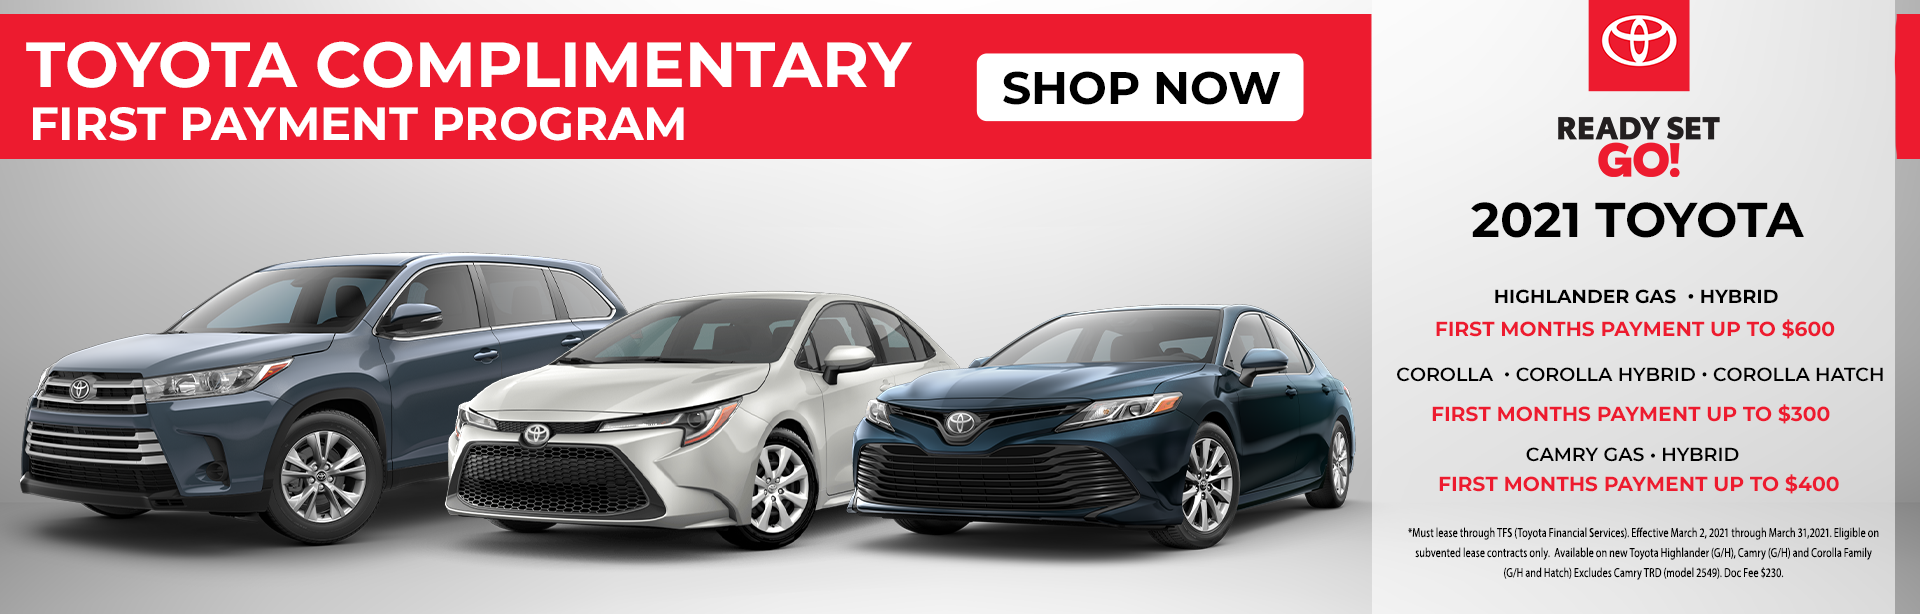 ToyotaPaymentBanner_March